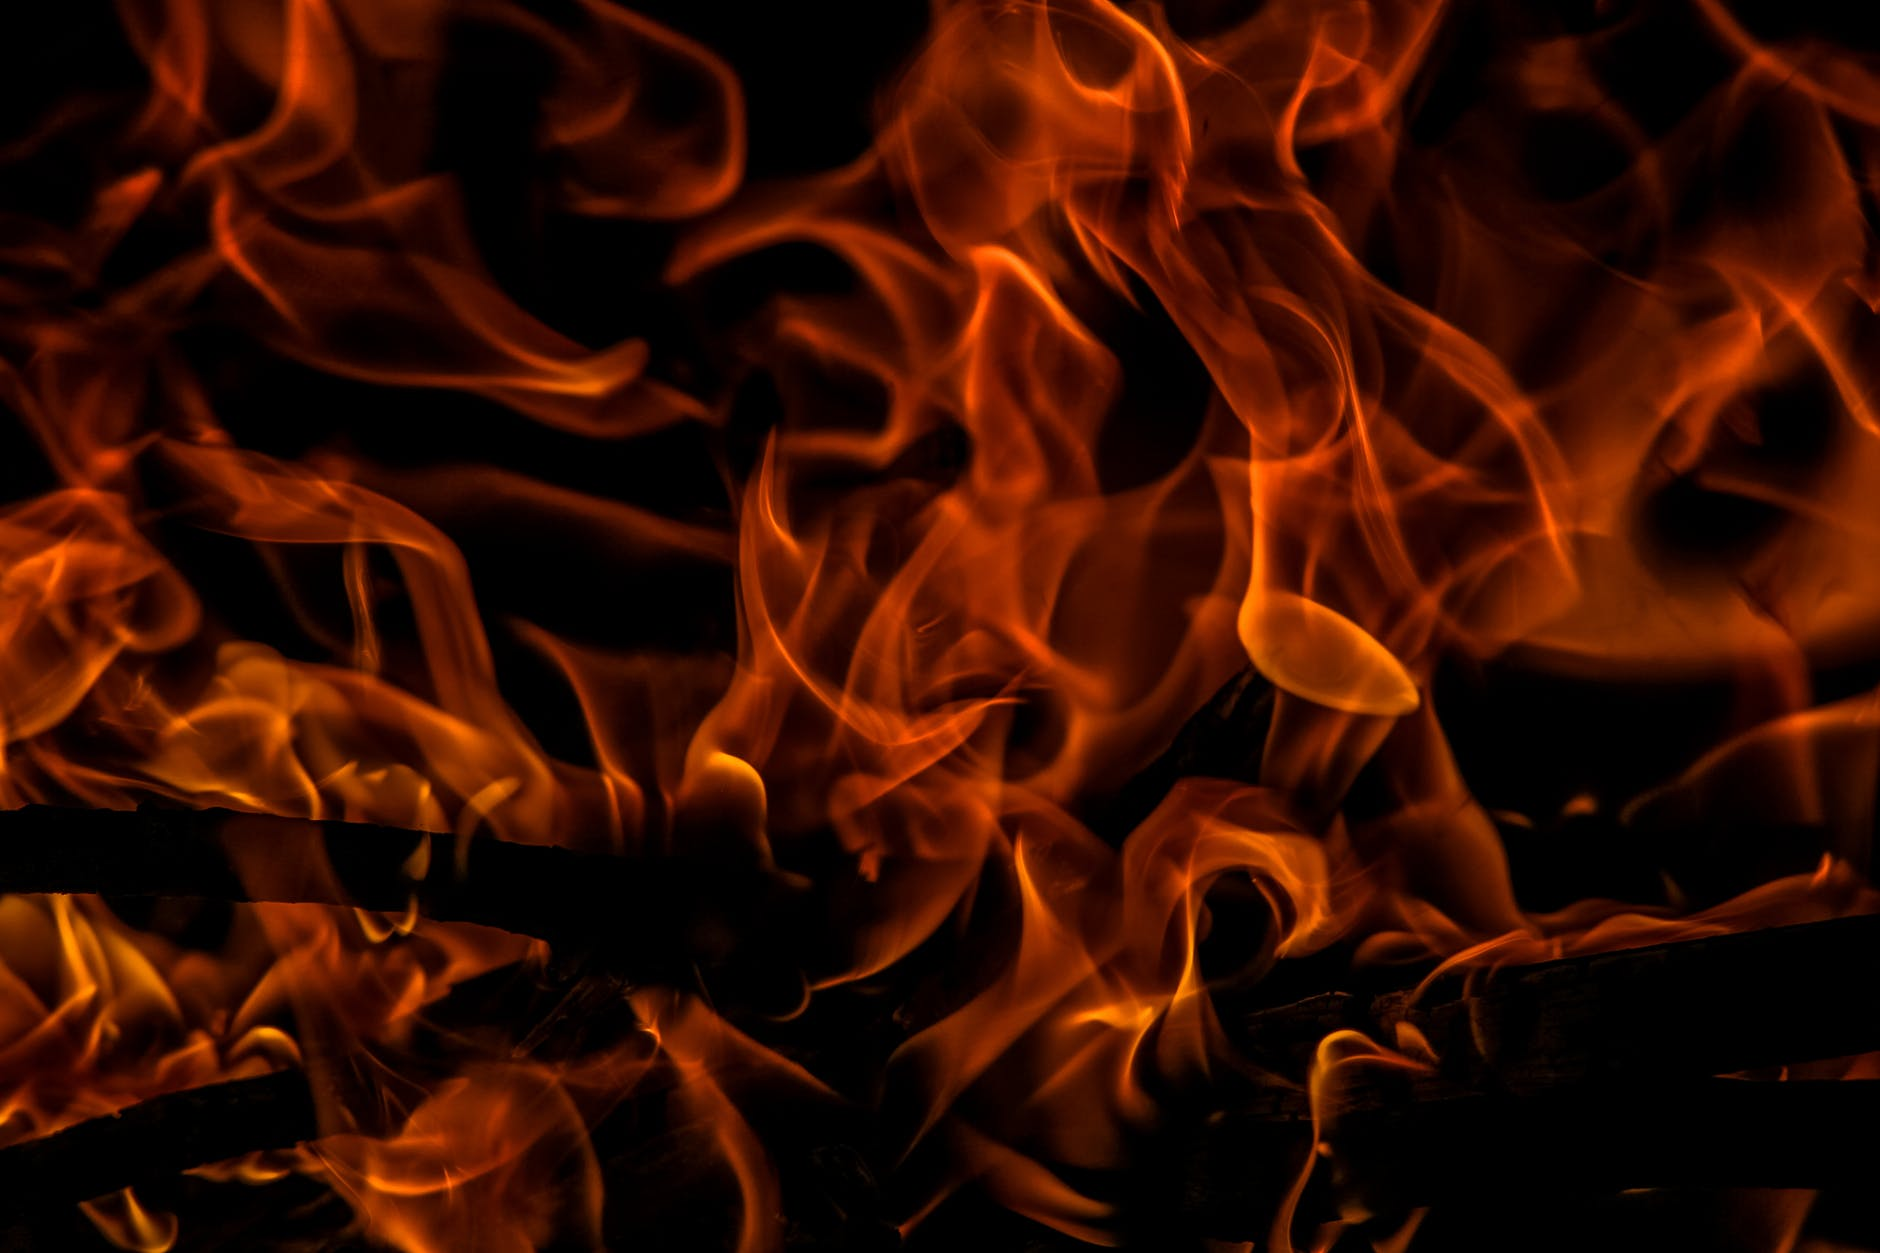 pexels-photo-97492.jpeg